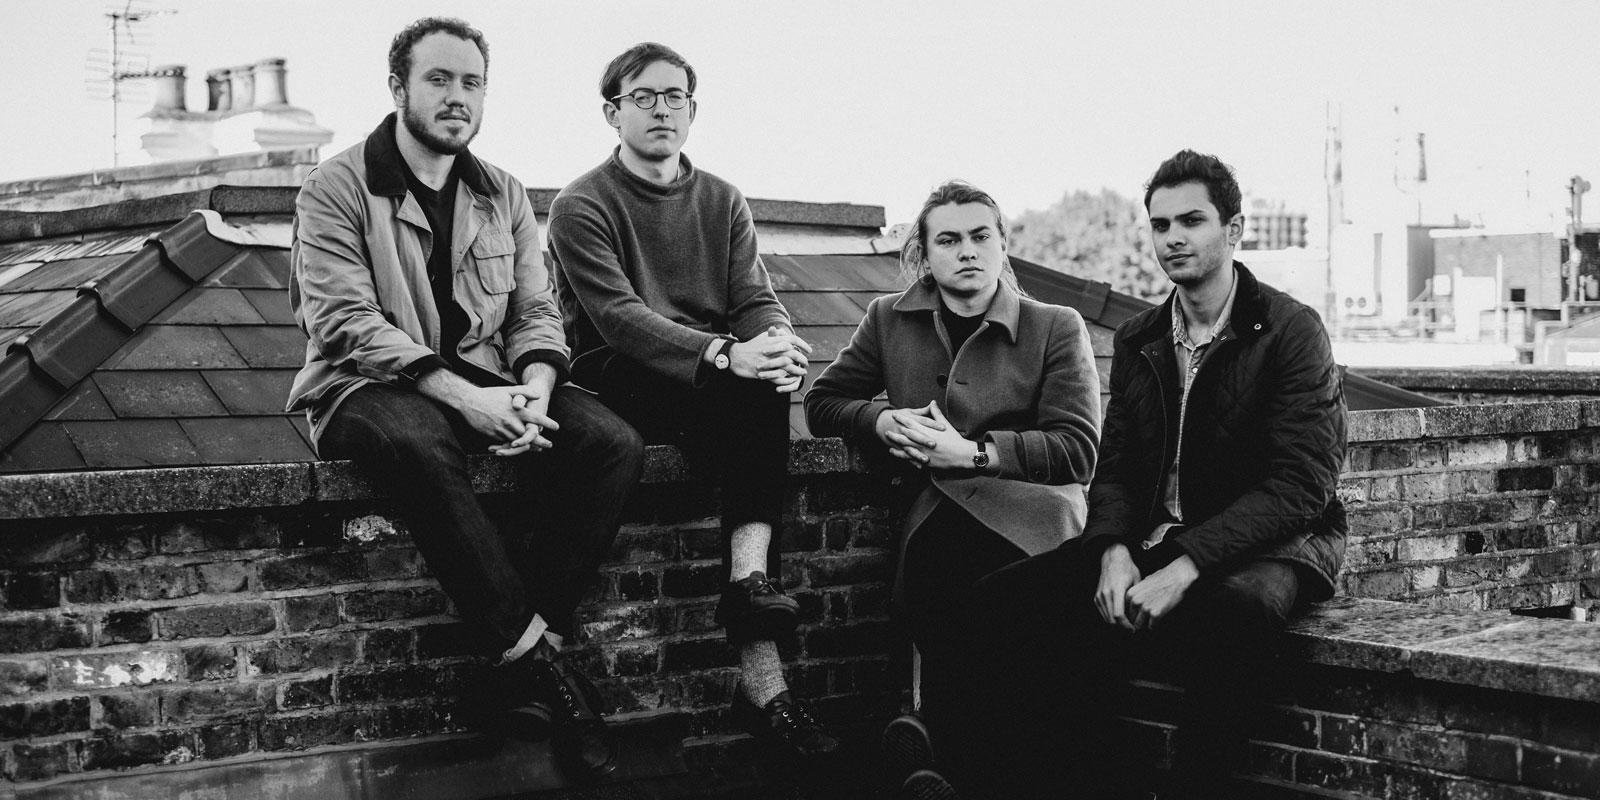 Bombay Bicycle Club returns with first new single in five years, 'Eat, Sleep, Wake (Nothing But You)' – listen